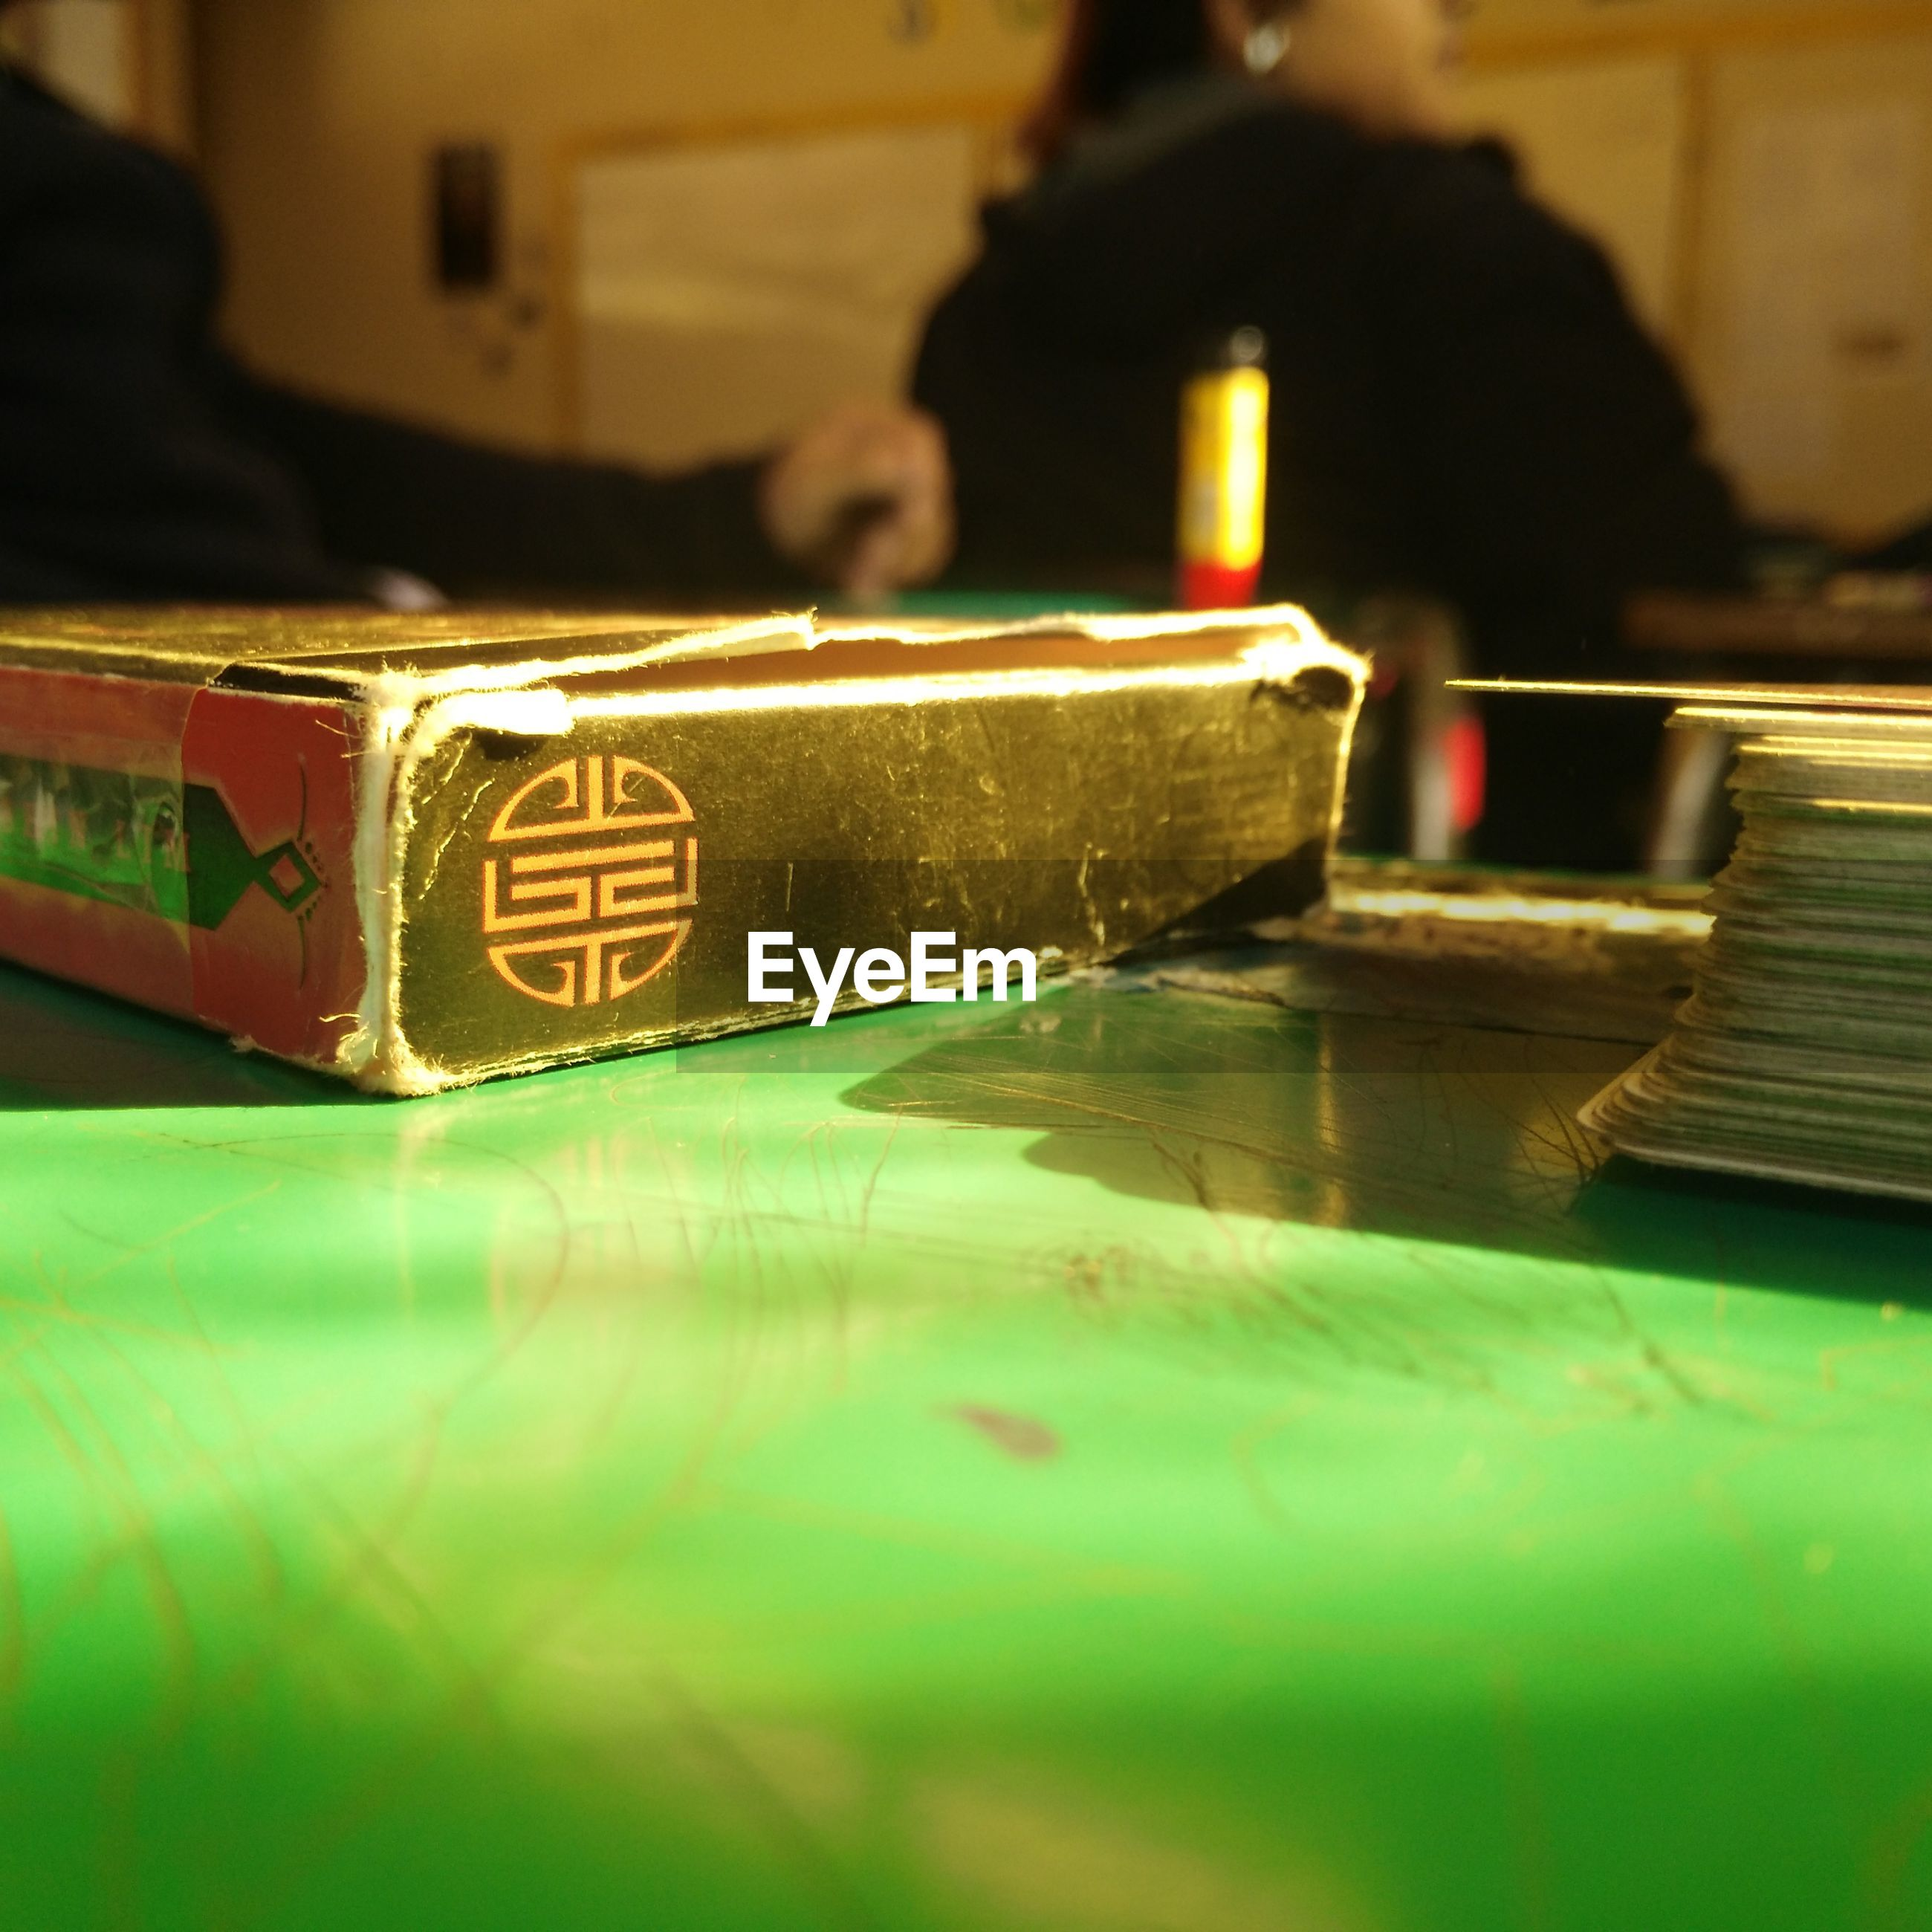 indoors, selective focus, close-up, focus on foreground, text, arts culture and entertainment, western script, communication, technology, table, reflection, illuminated, music, night, incidental people, still life, part of, surface level, men